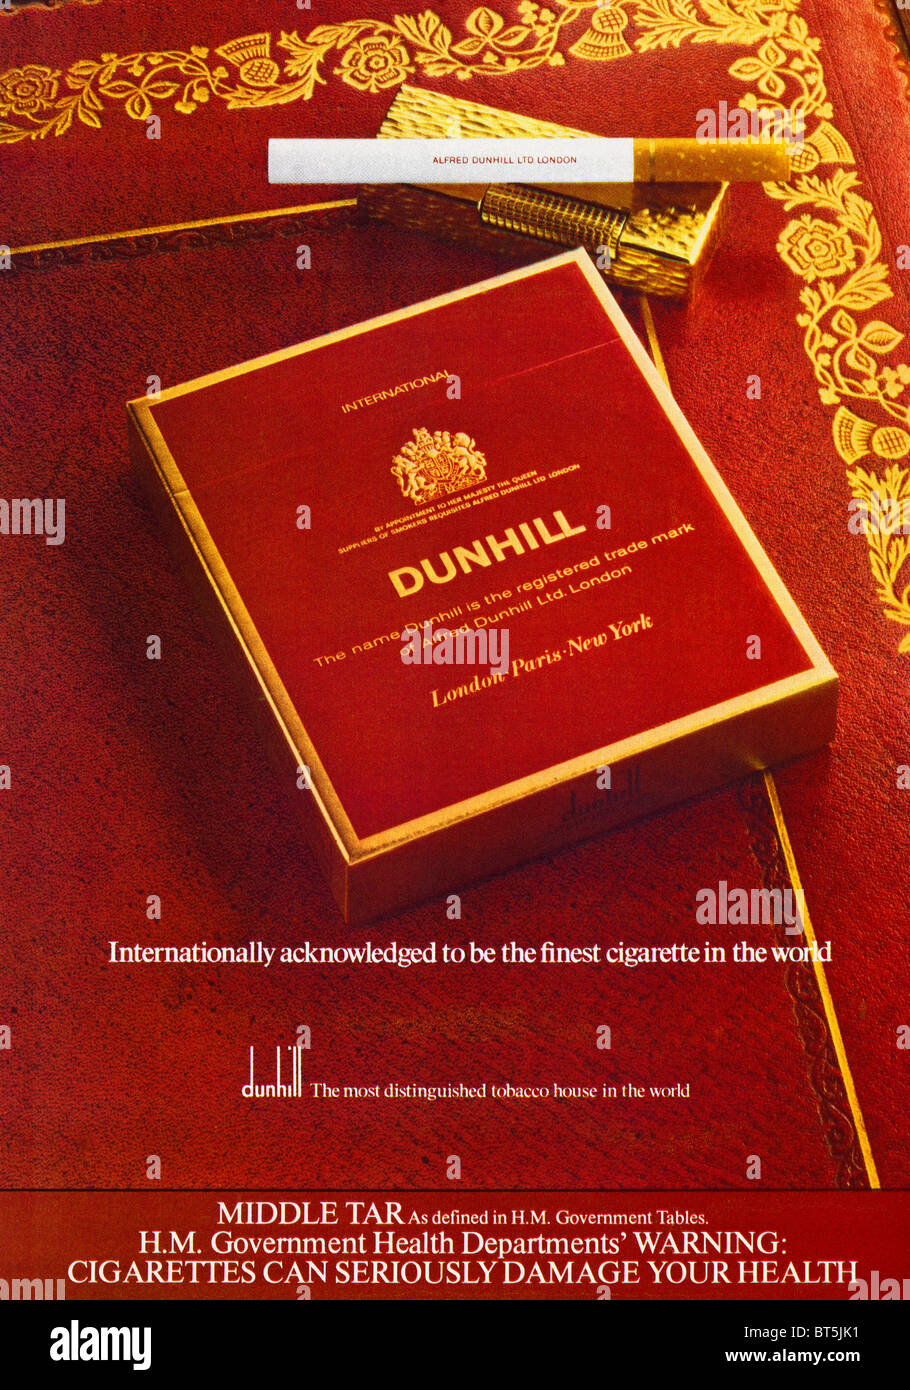 Advert for Dunhill cigarettes in 1st issue of NOW magazine dated September 1979 - Stock Image